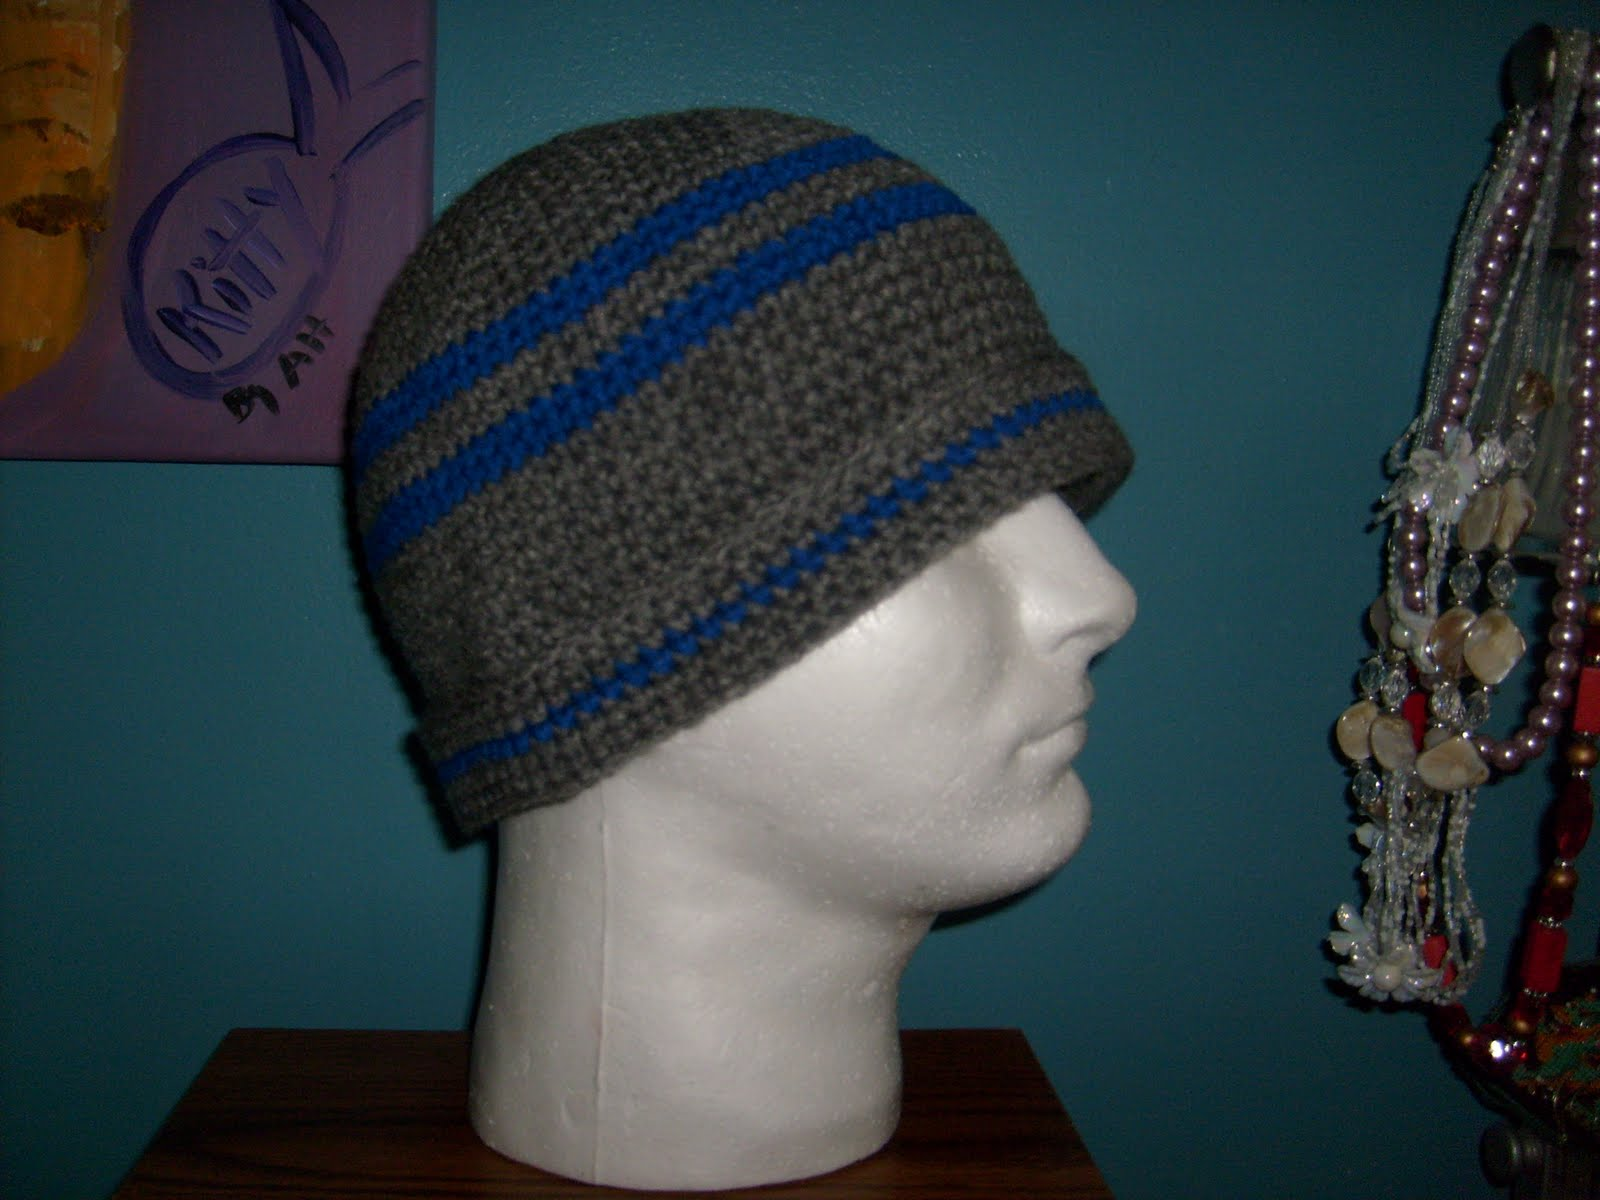 Manners Crochet and Craft: Simple Mens Beanie Hat